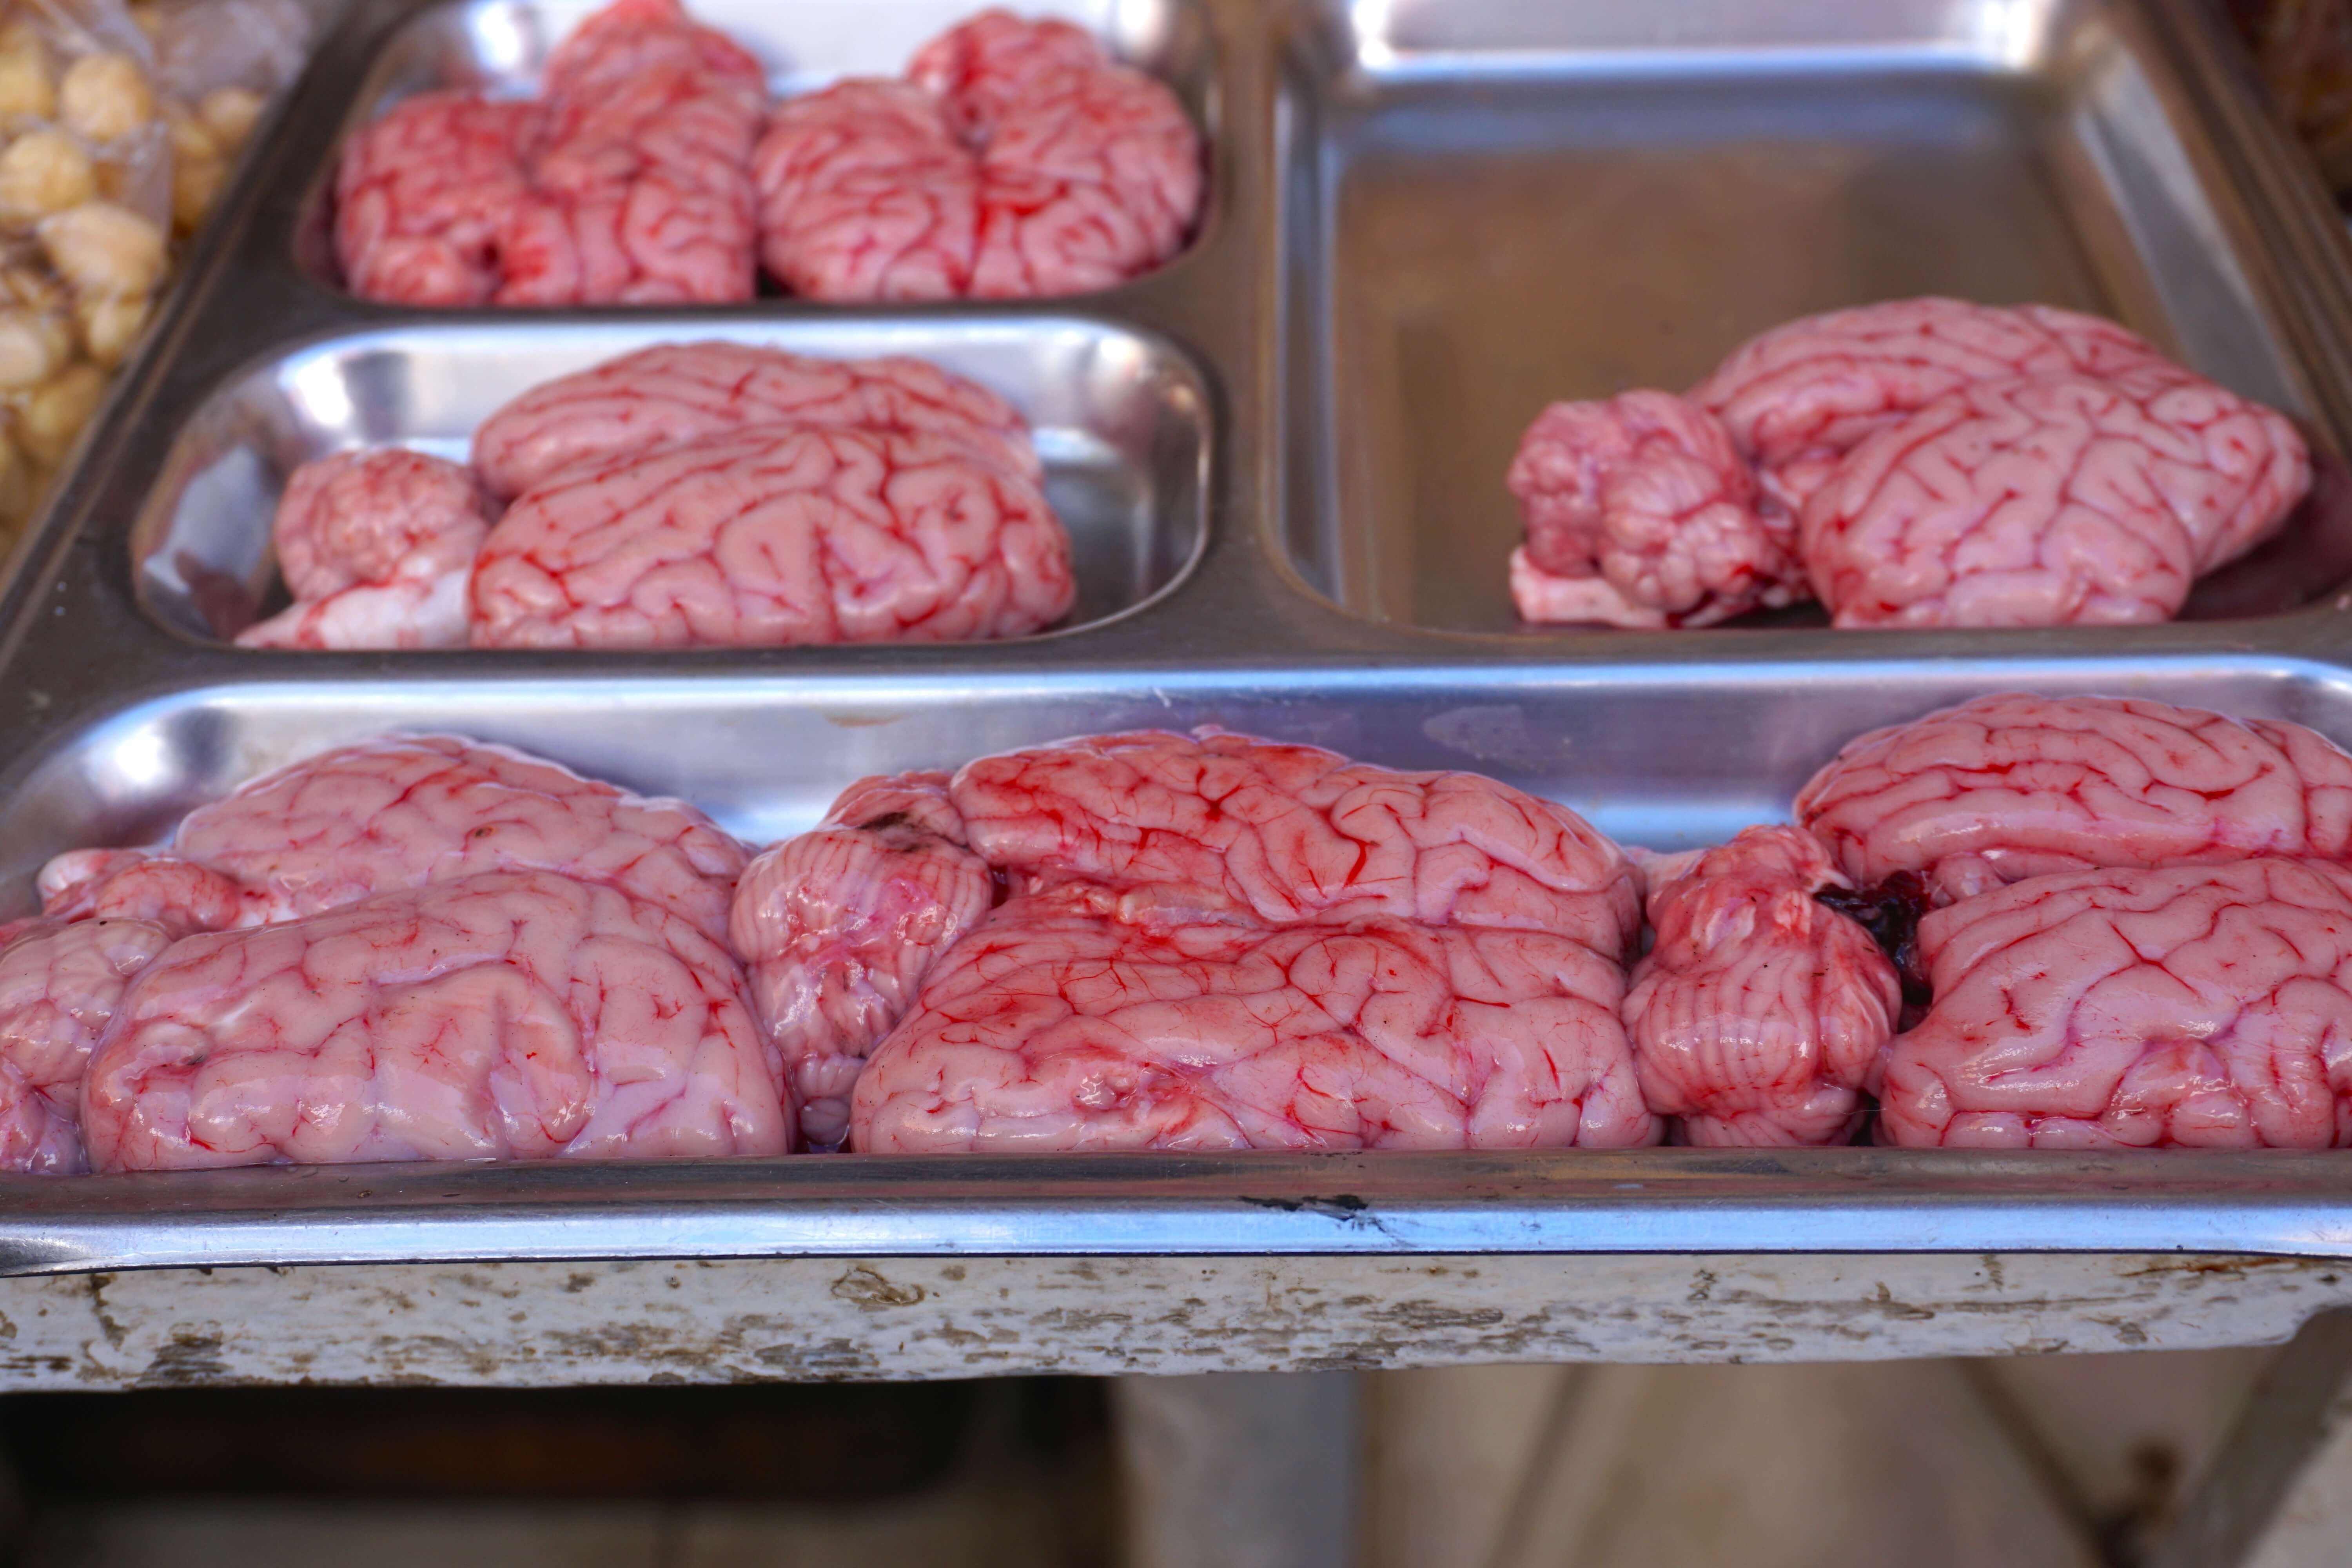 Sheep Brains - Morocco Food Guide: Delicious foods you need to try while visiting Morocco